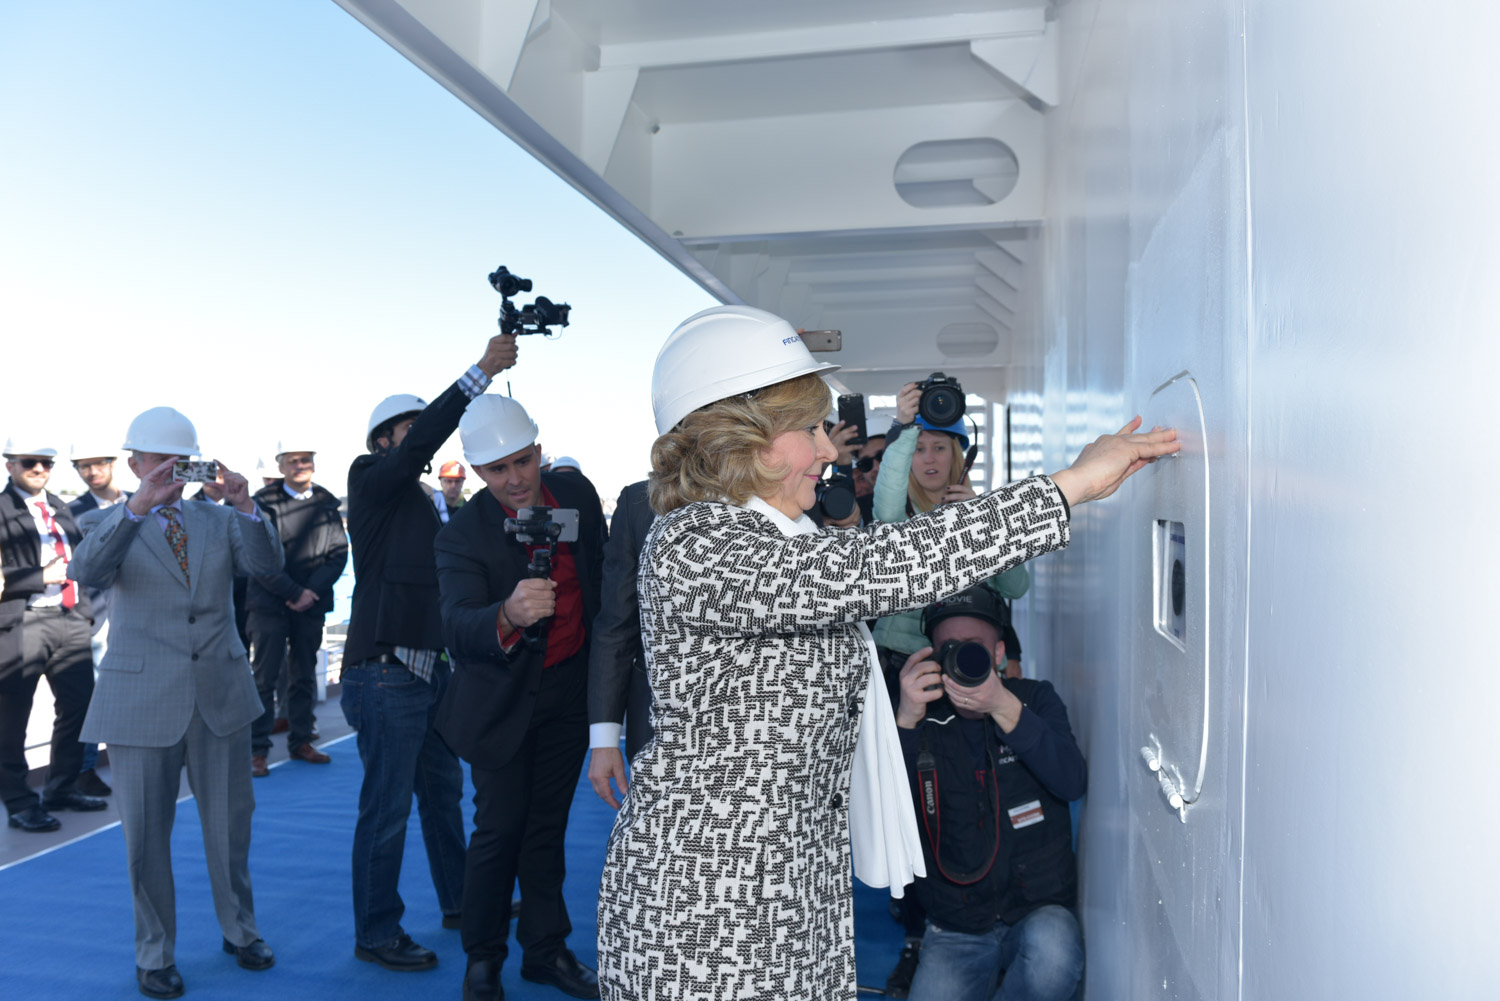 Significant Milestone In Carnival Horizon's Construction Commemorated With Traditional Maritime Coin Ceremony